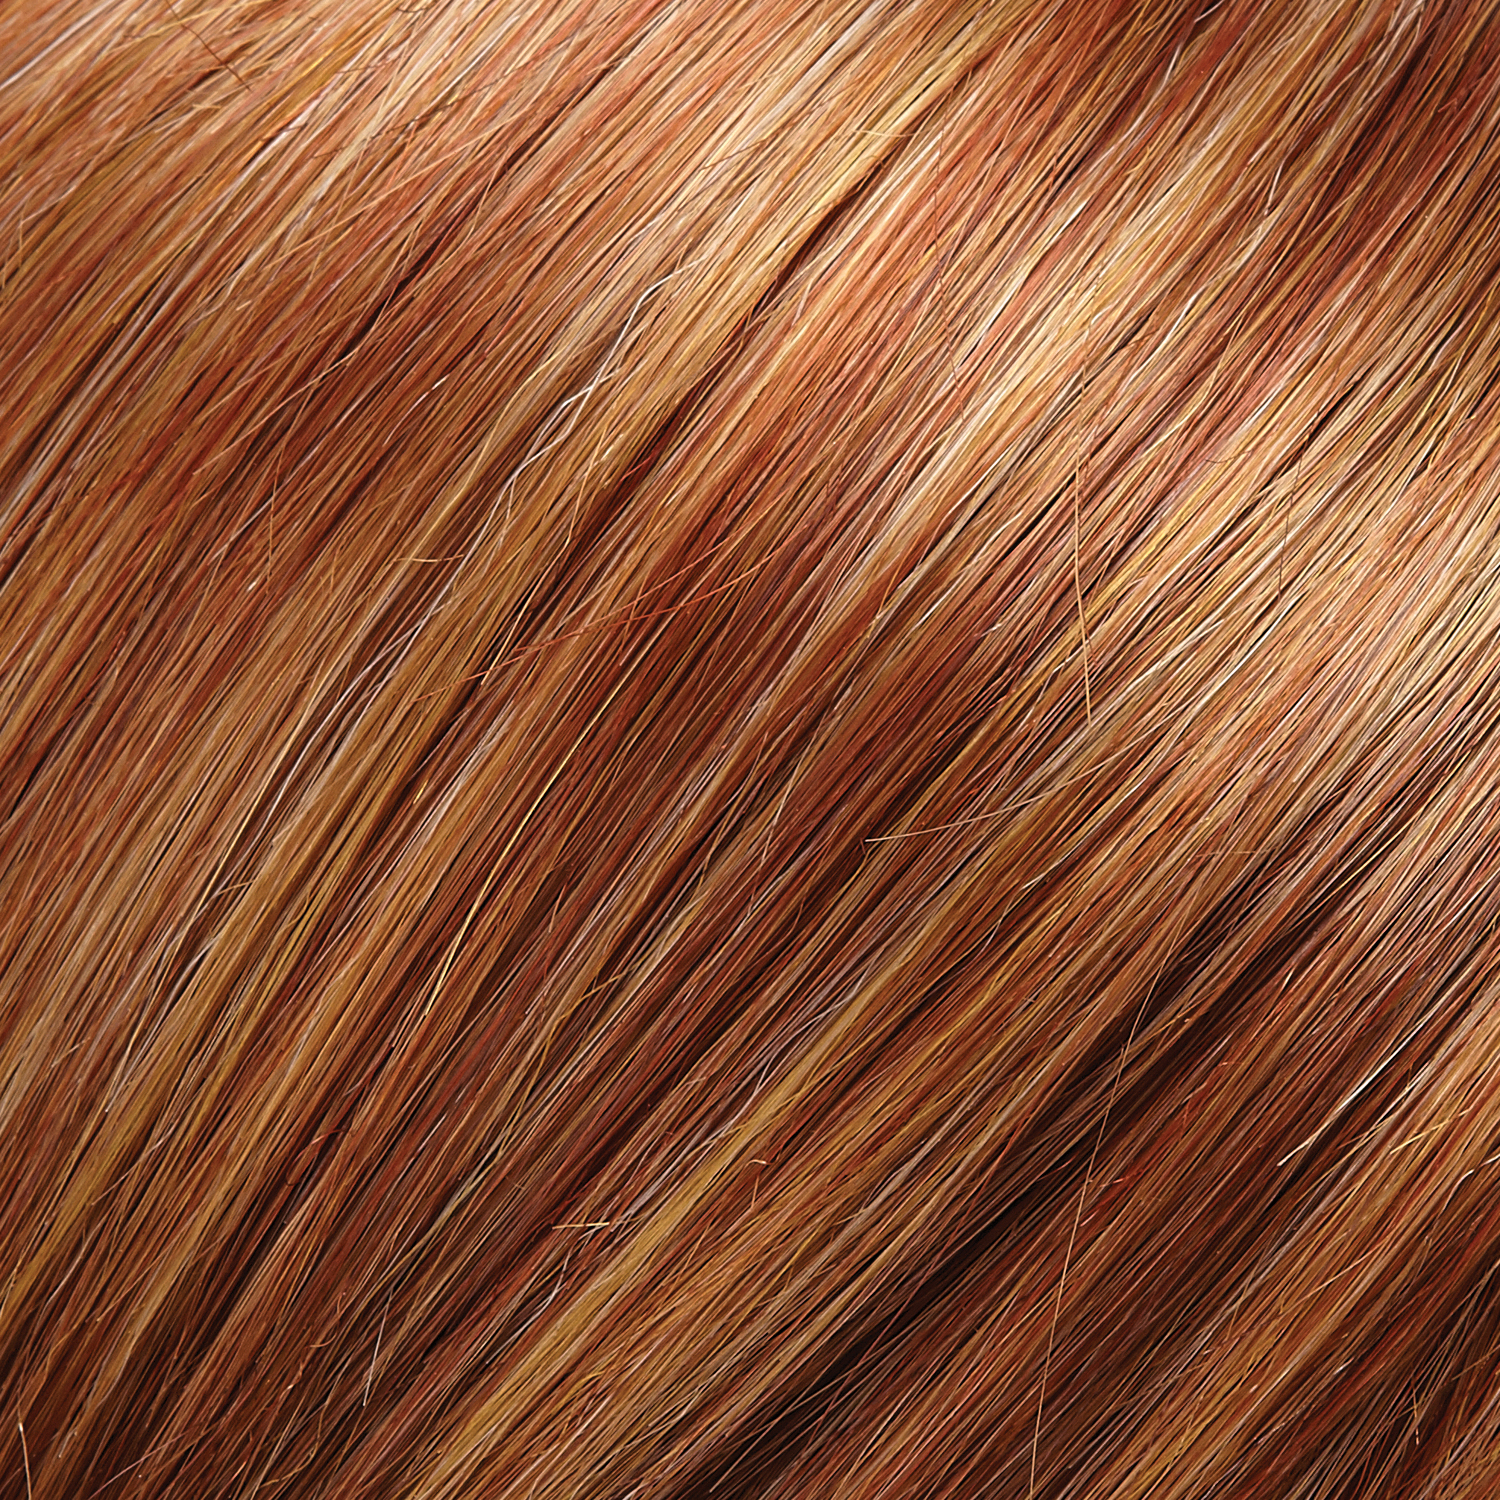 33RH27 - Medium Natural Red with 33% Medium Red-Golden Blonde Highlights